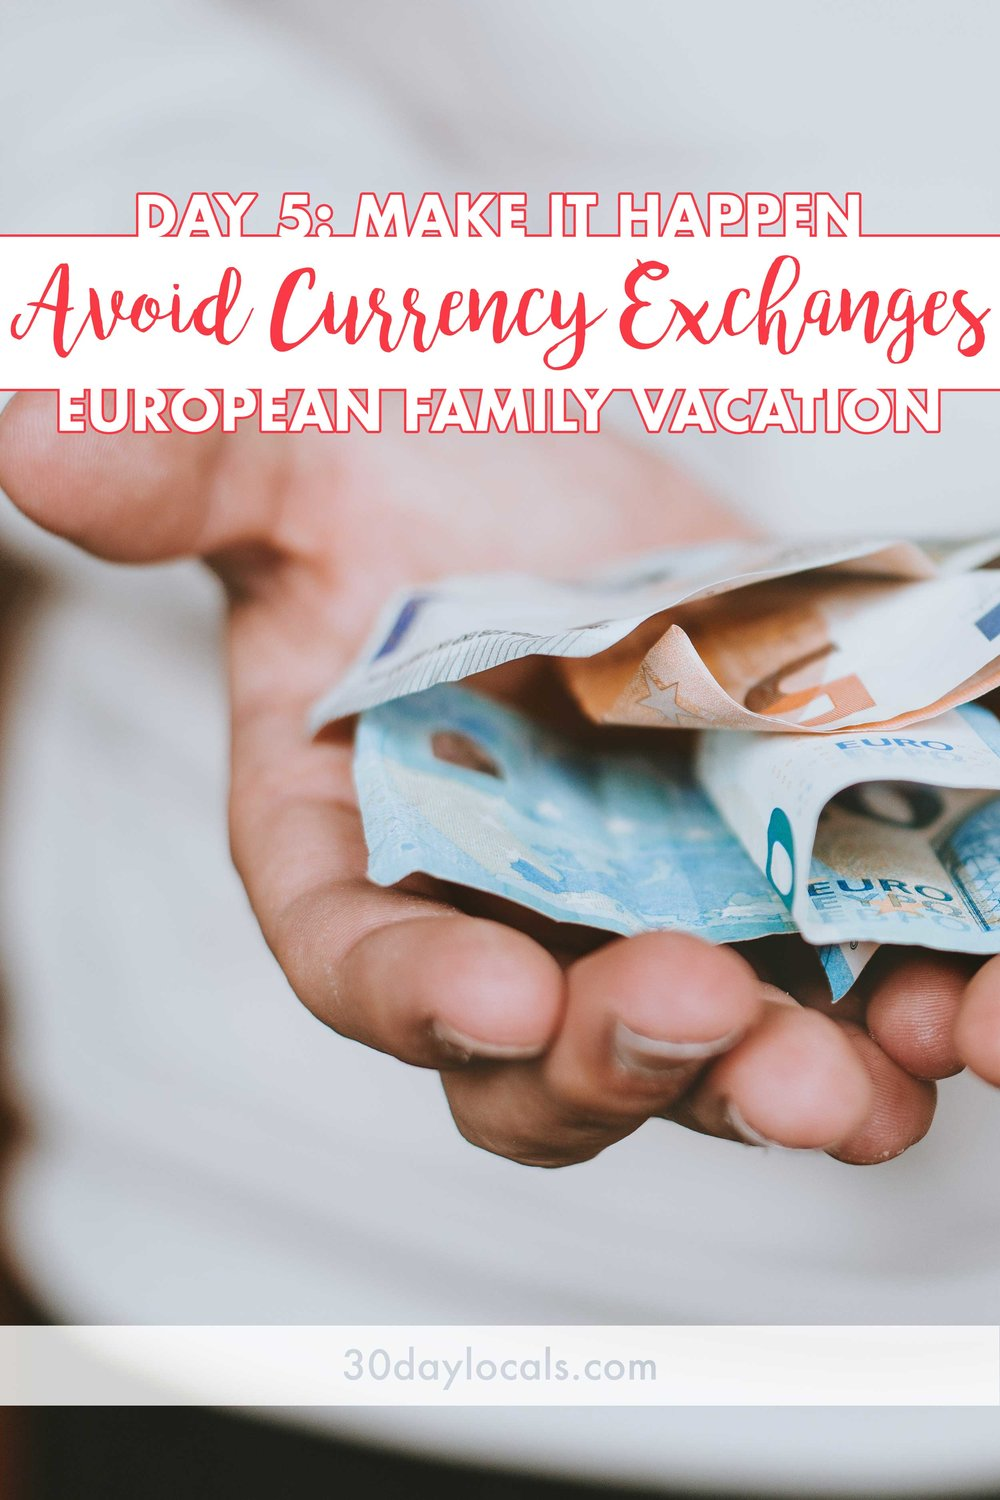 Does using foreign money make you a bit uncomfortable? Discover how we get the best value for our money by avoiding currency exchanges, not carrying much cash, and using ATMs instead.